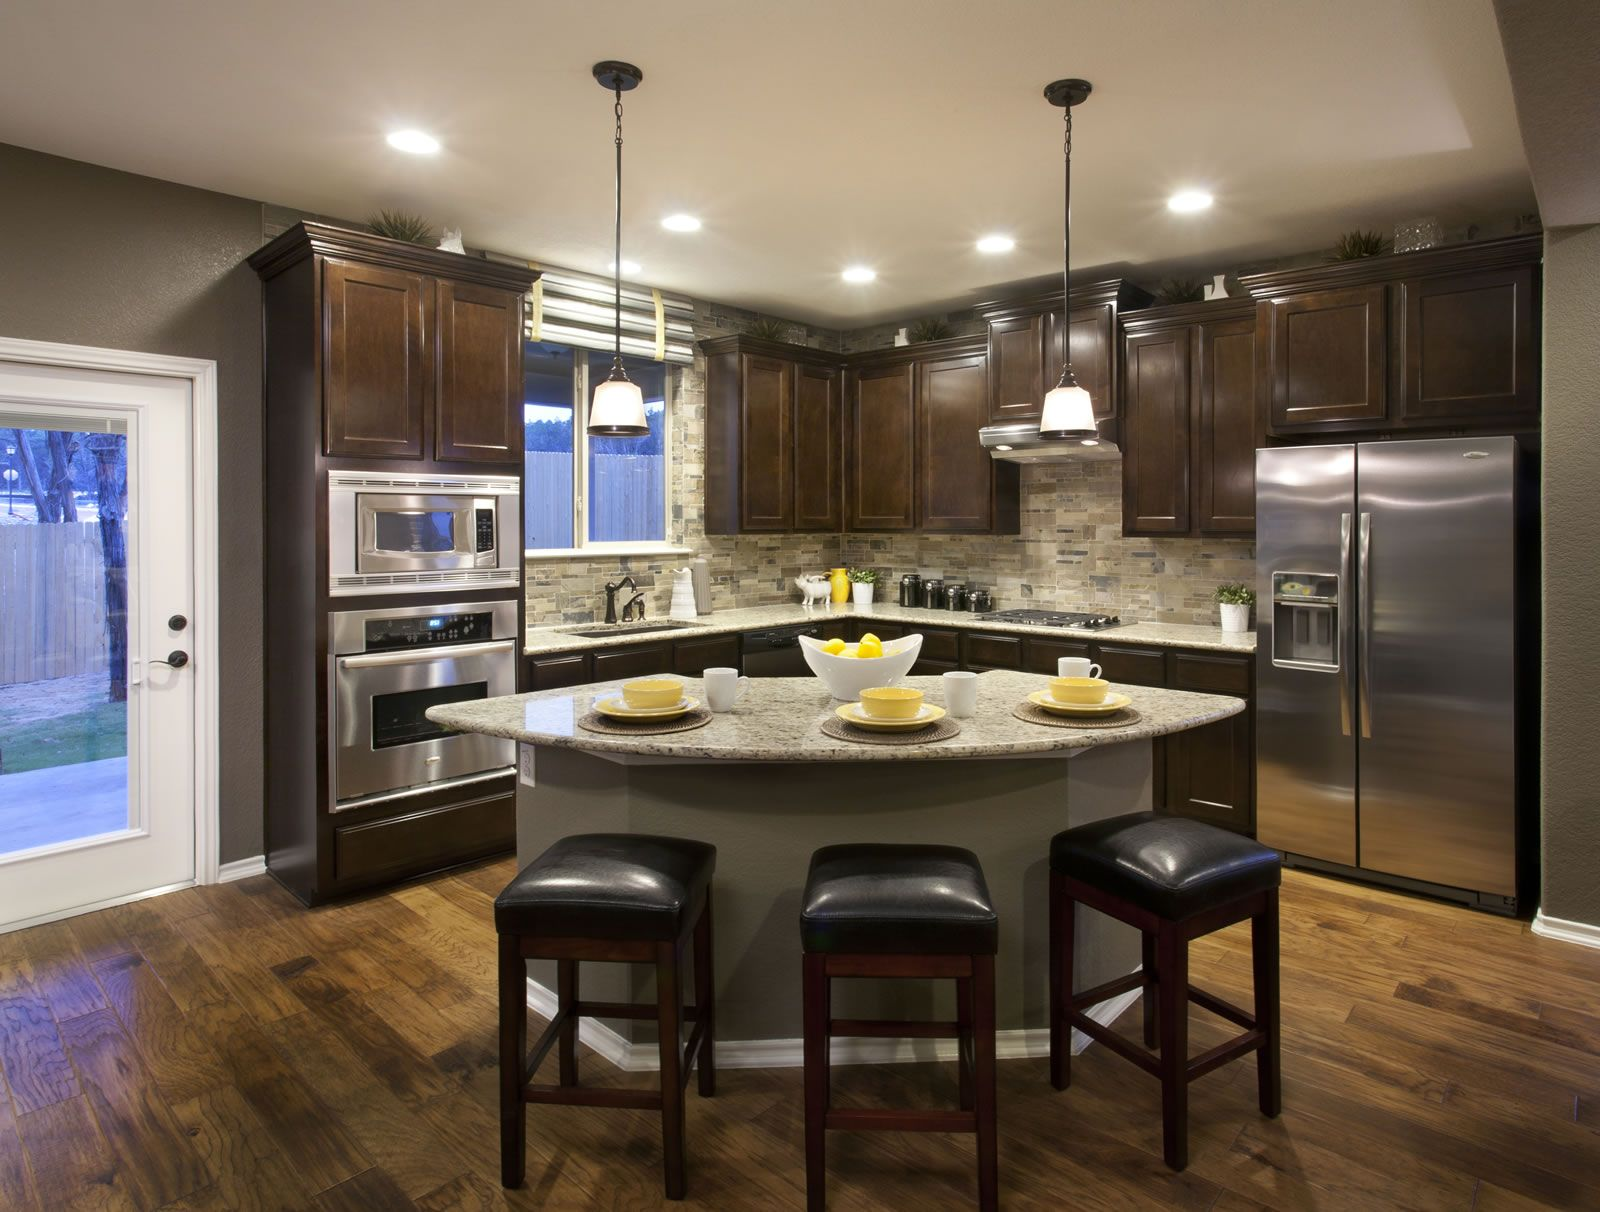 Kitchen (With images) | Home decor kitchen, Model home ... on Model Kitchen Ideas  id=56838